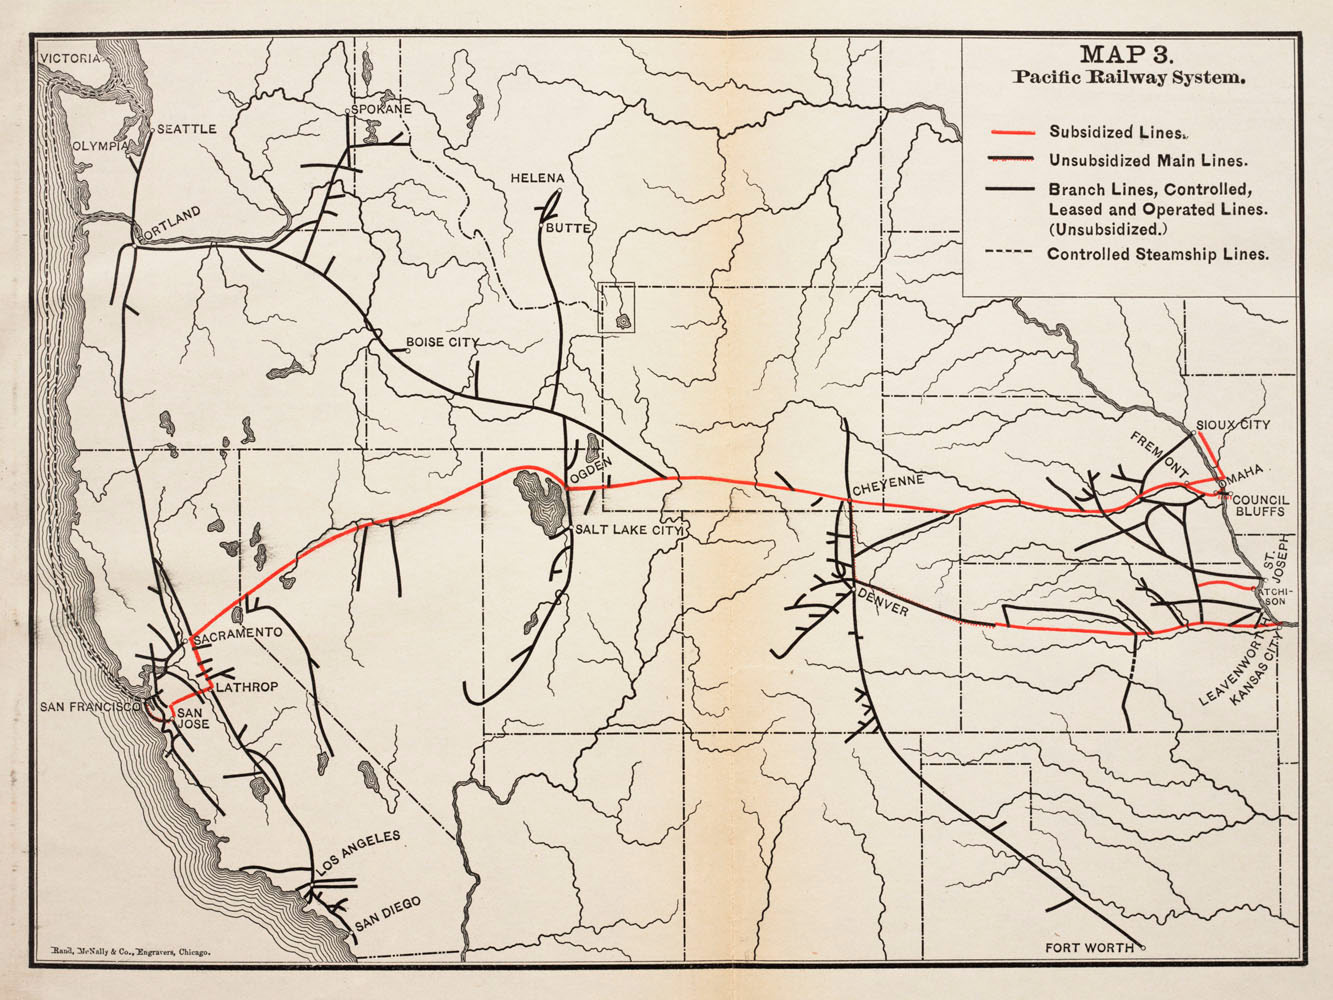 A Brief History Of The Pacific Railway The Transcontinental Railroad